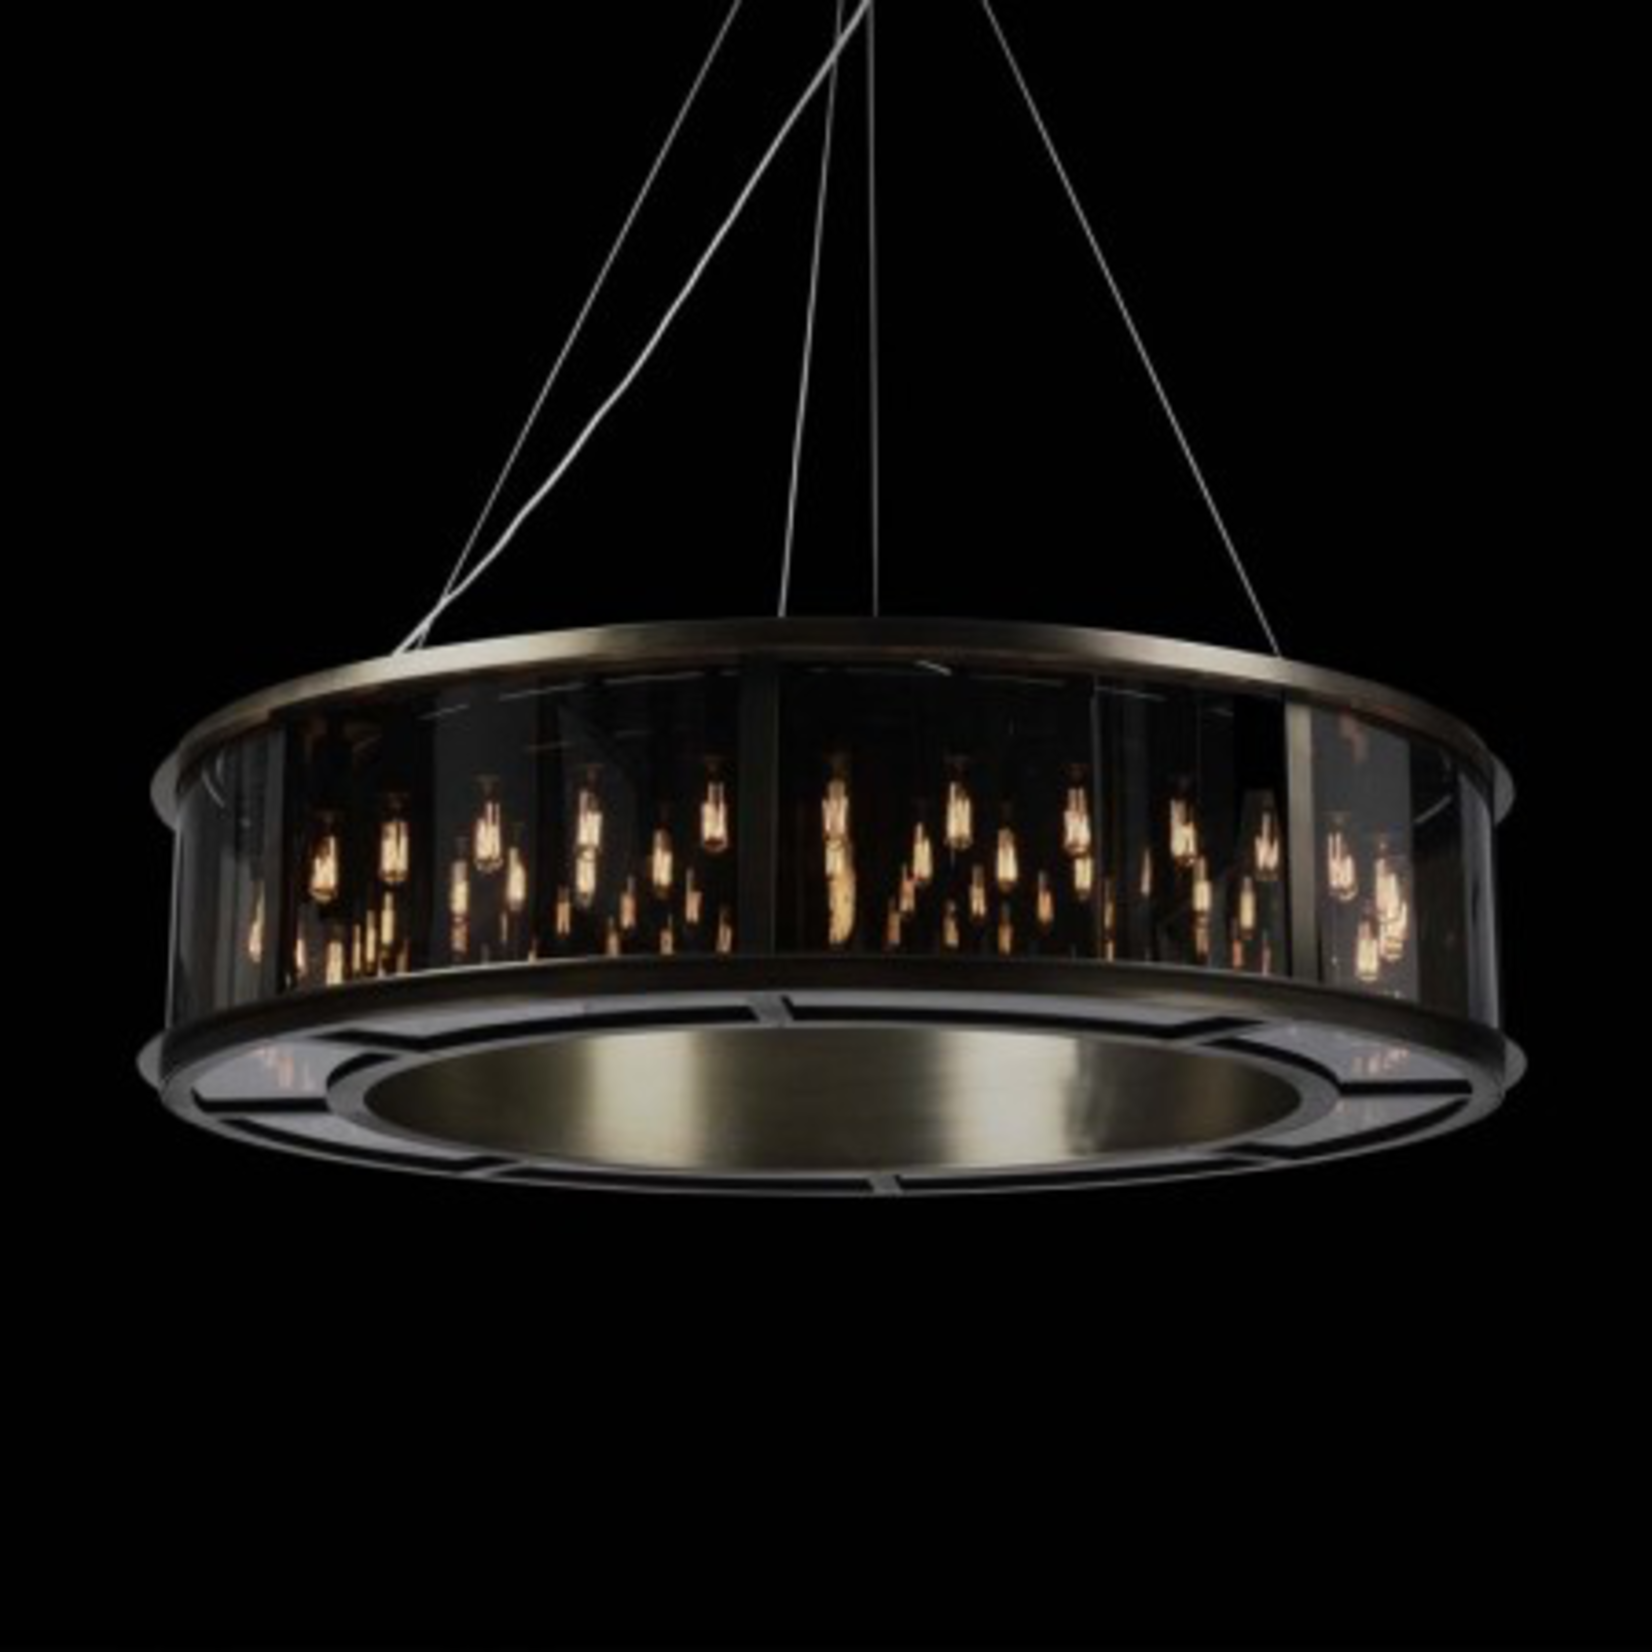 TIMOTHY OULTON INCEPTION ROUND LARGE PENDANT